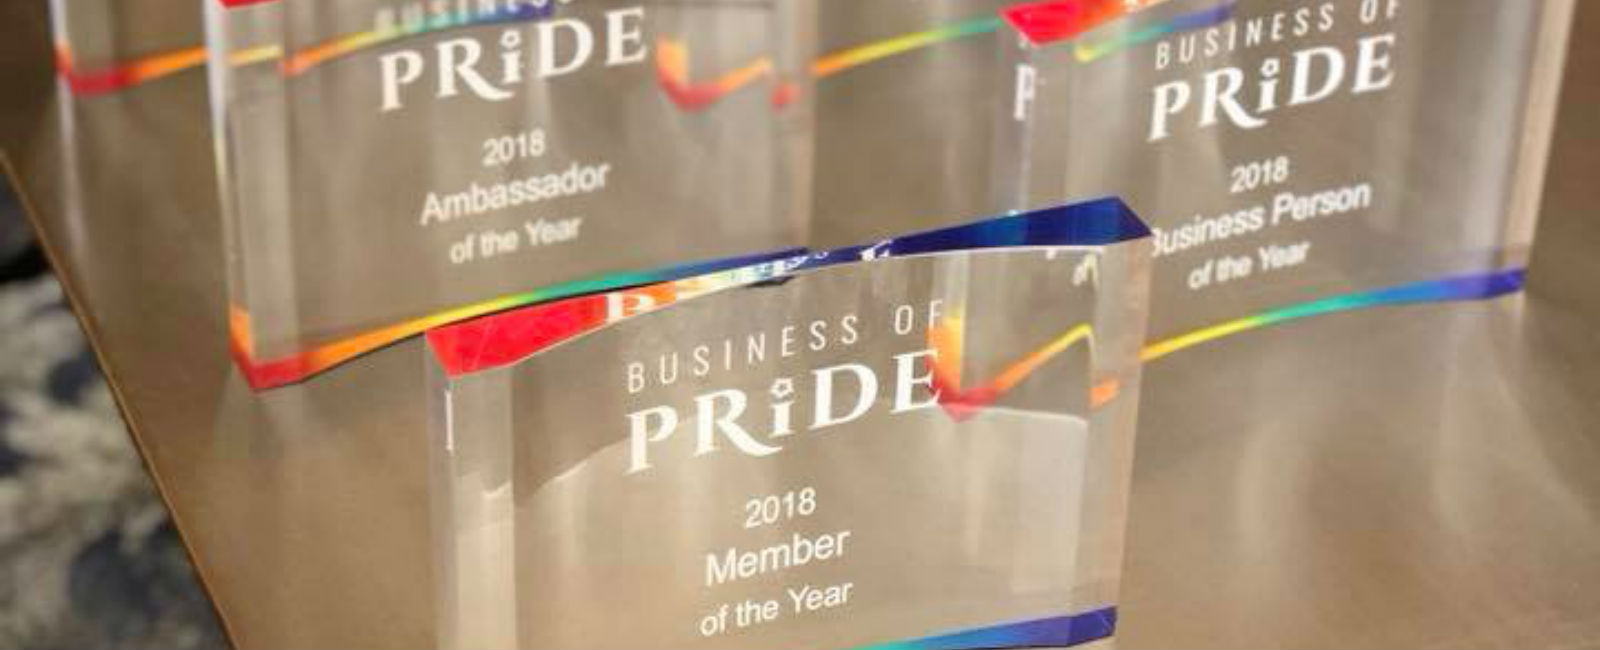 img-algbtcc-businessofprideawards2018.jpg